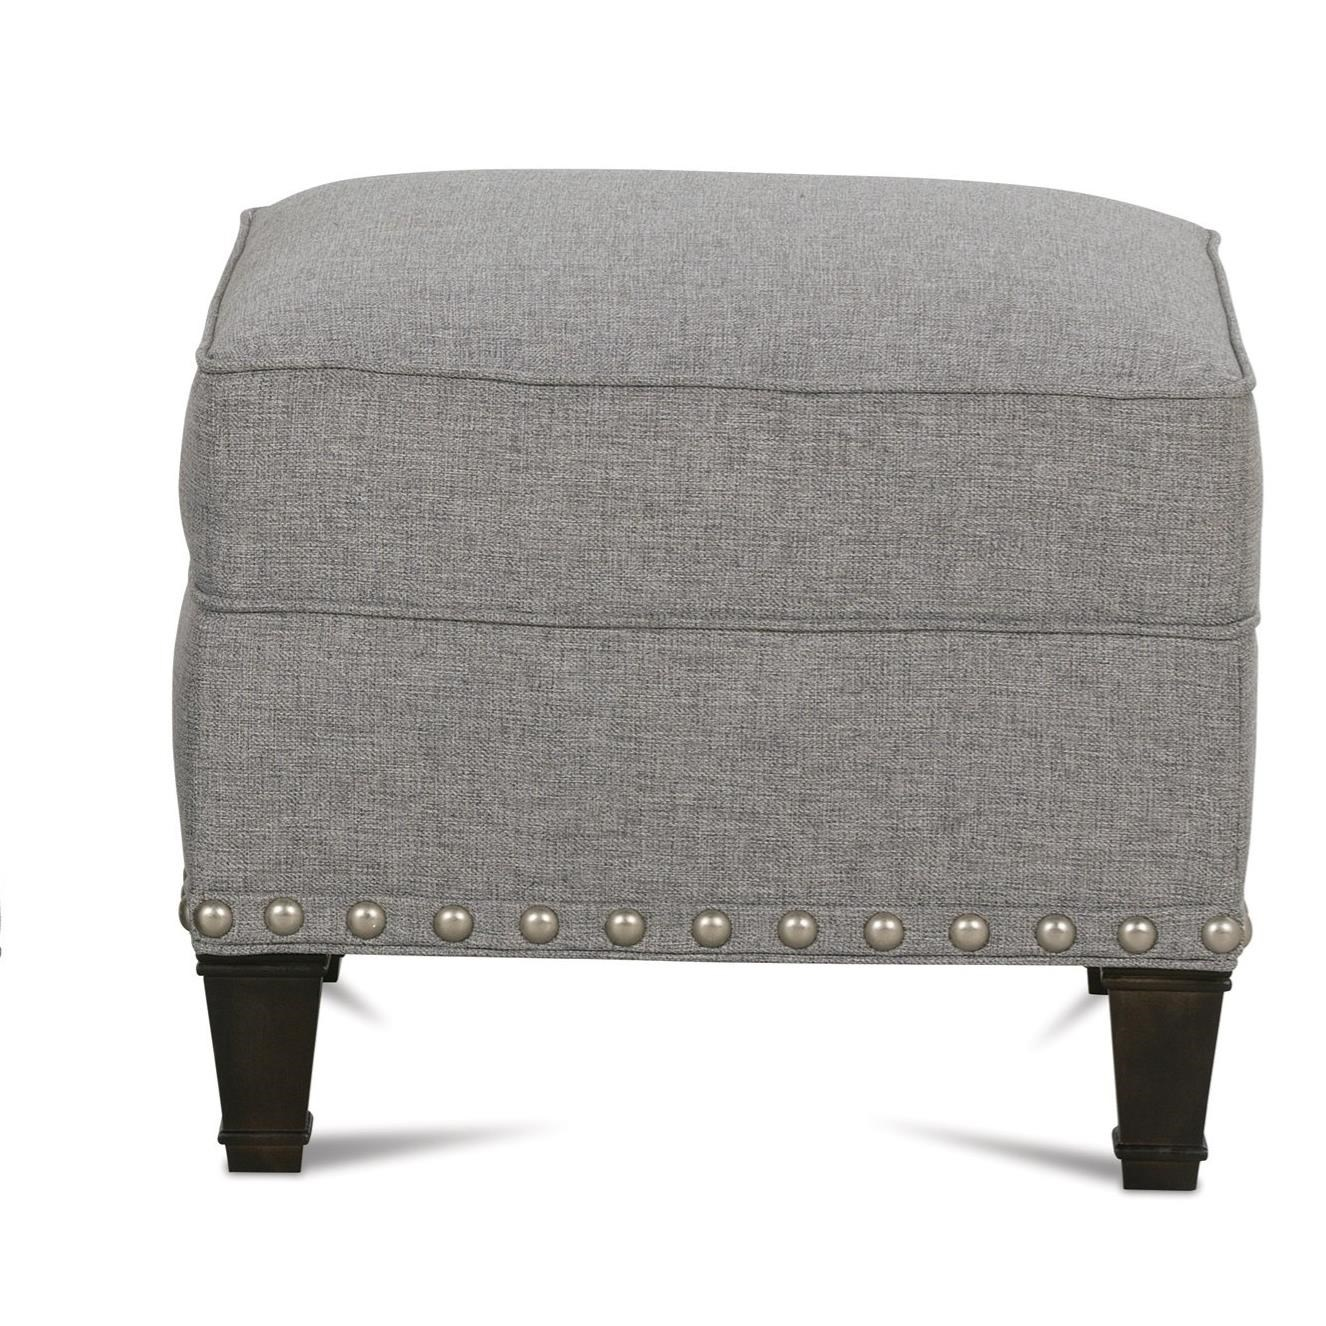 Rockford Traditional Upholstered Ottoman by Rowe at Baer's Furniture